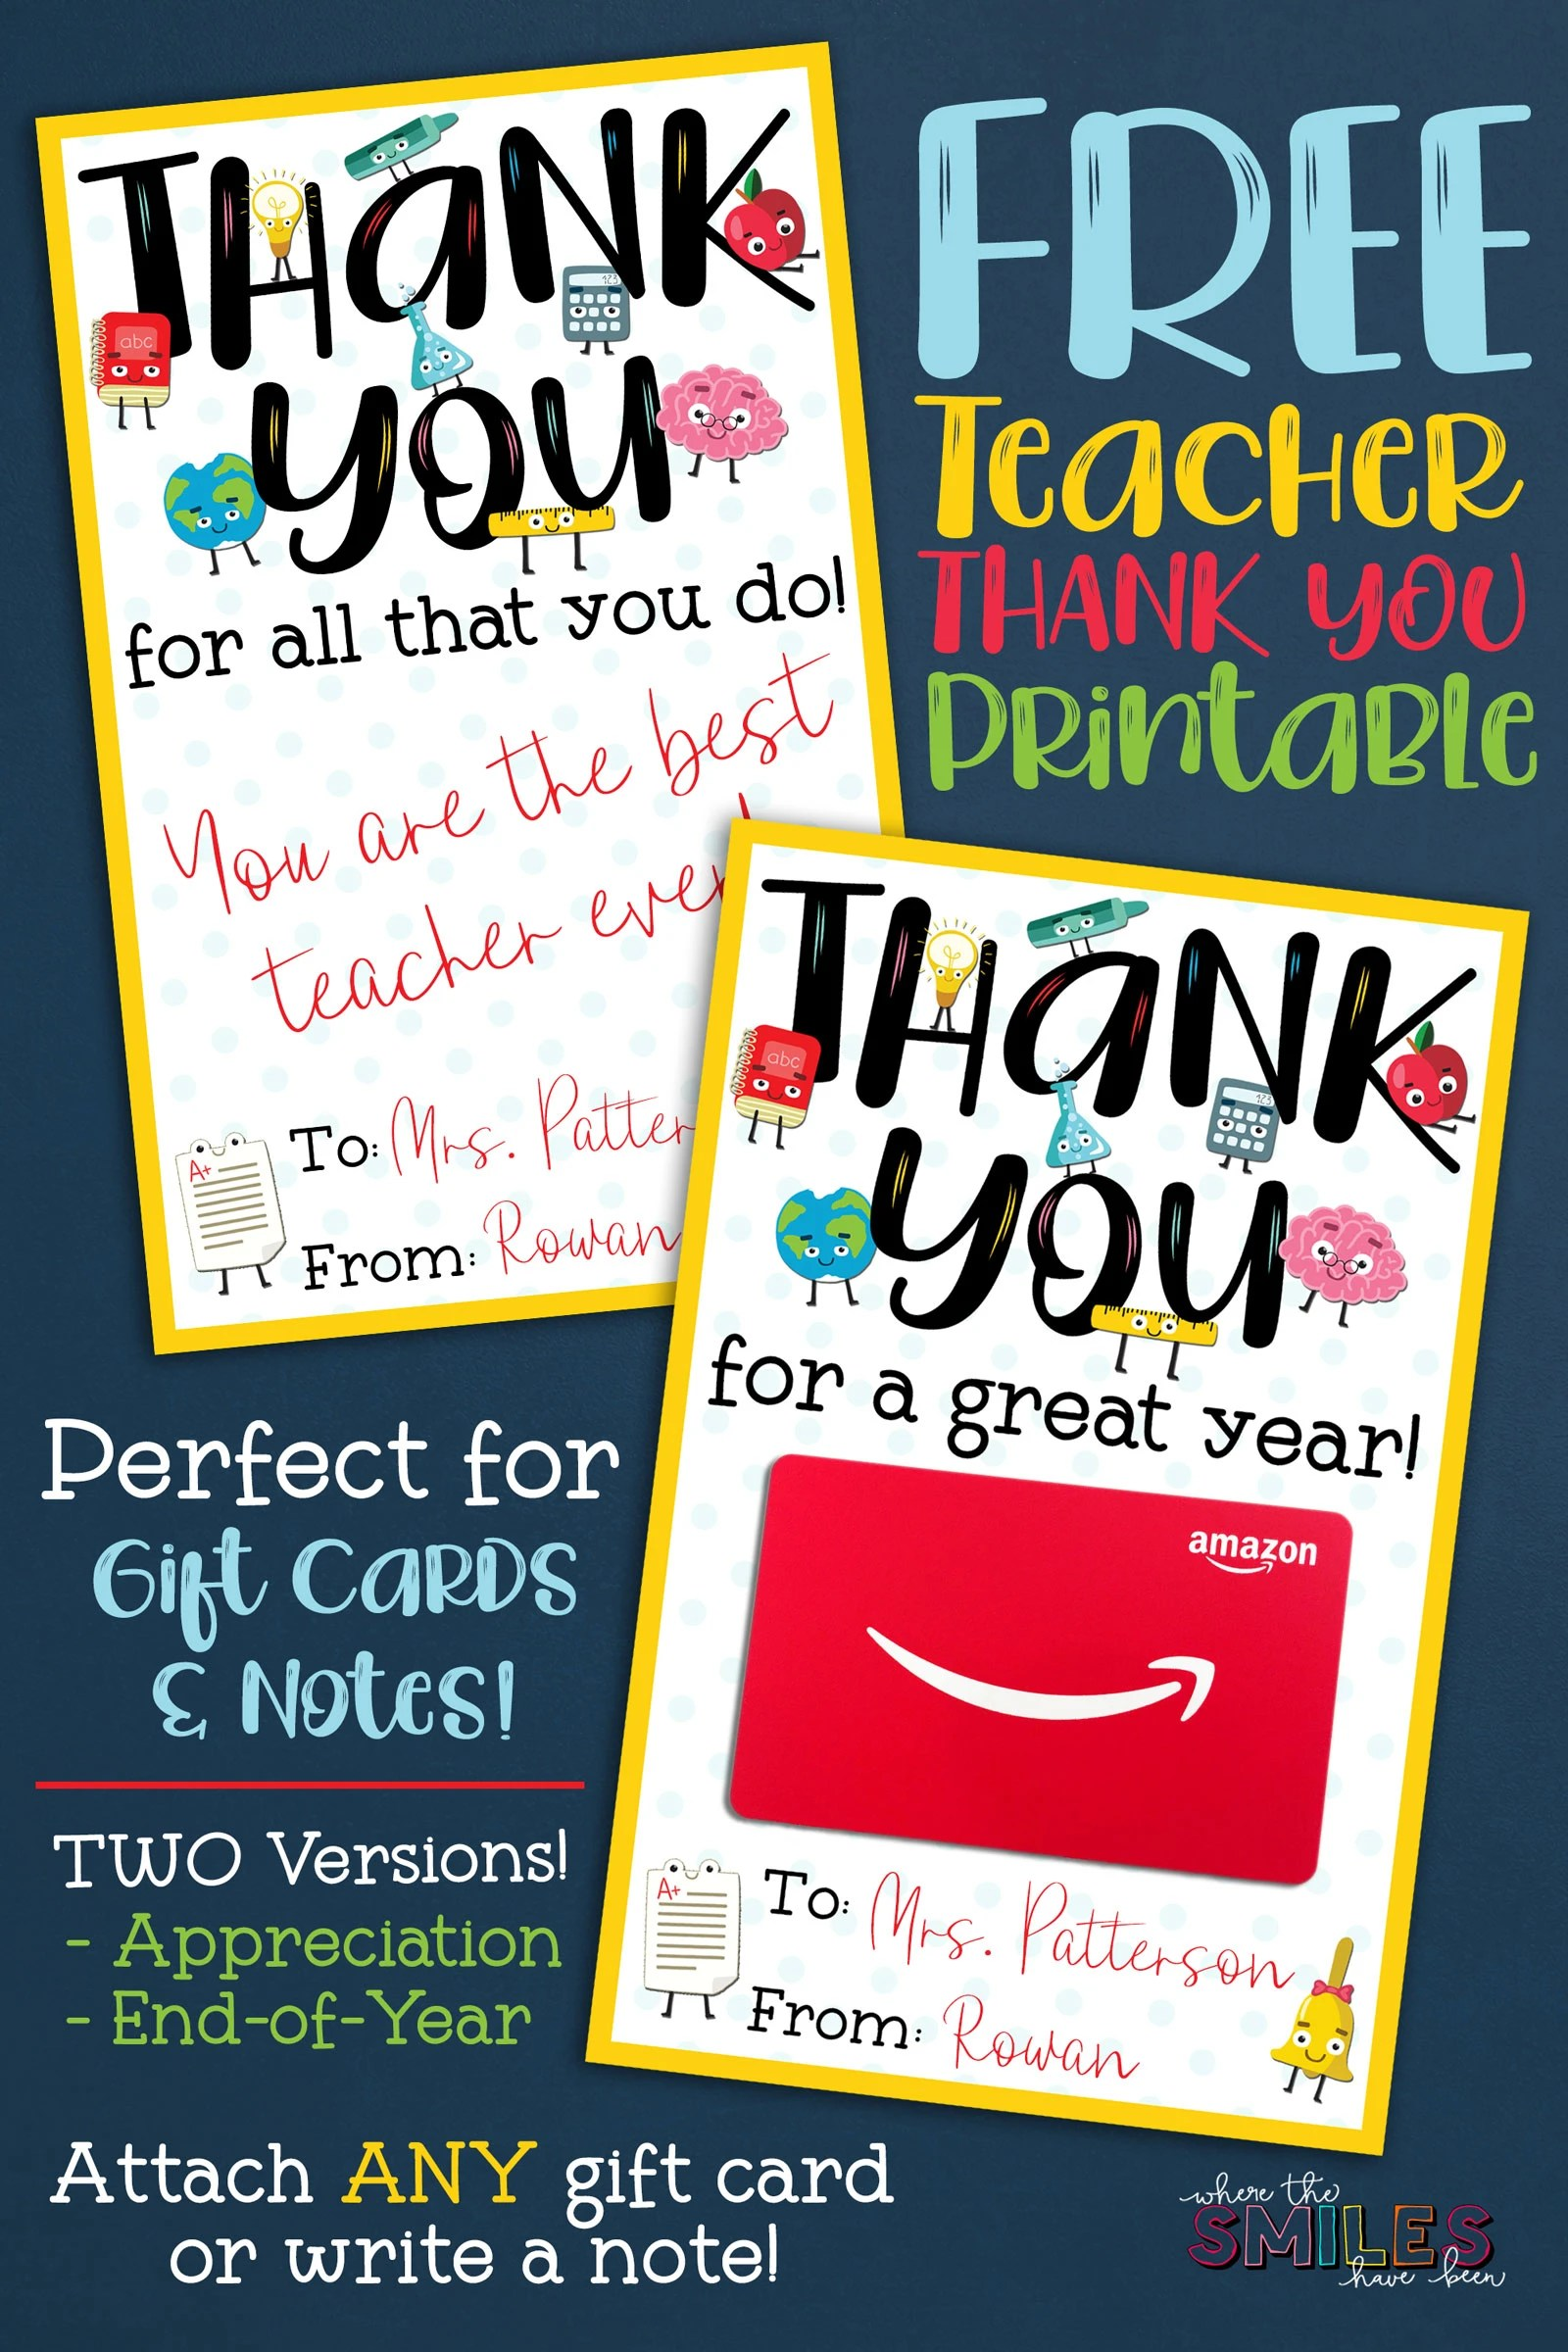 photograph regarding Printable Gifts referred to as Cost-free Trainer Appreciation Thank Your self Printable - 2 Styles!